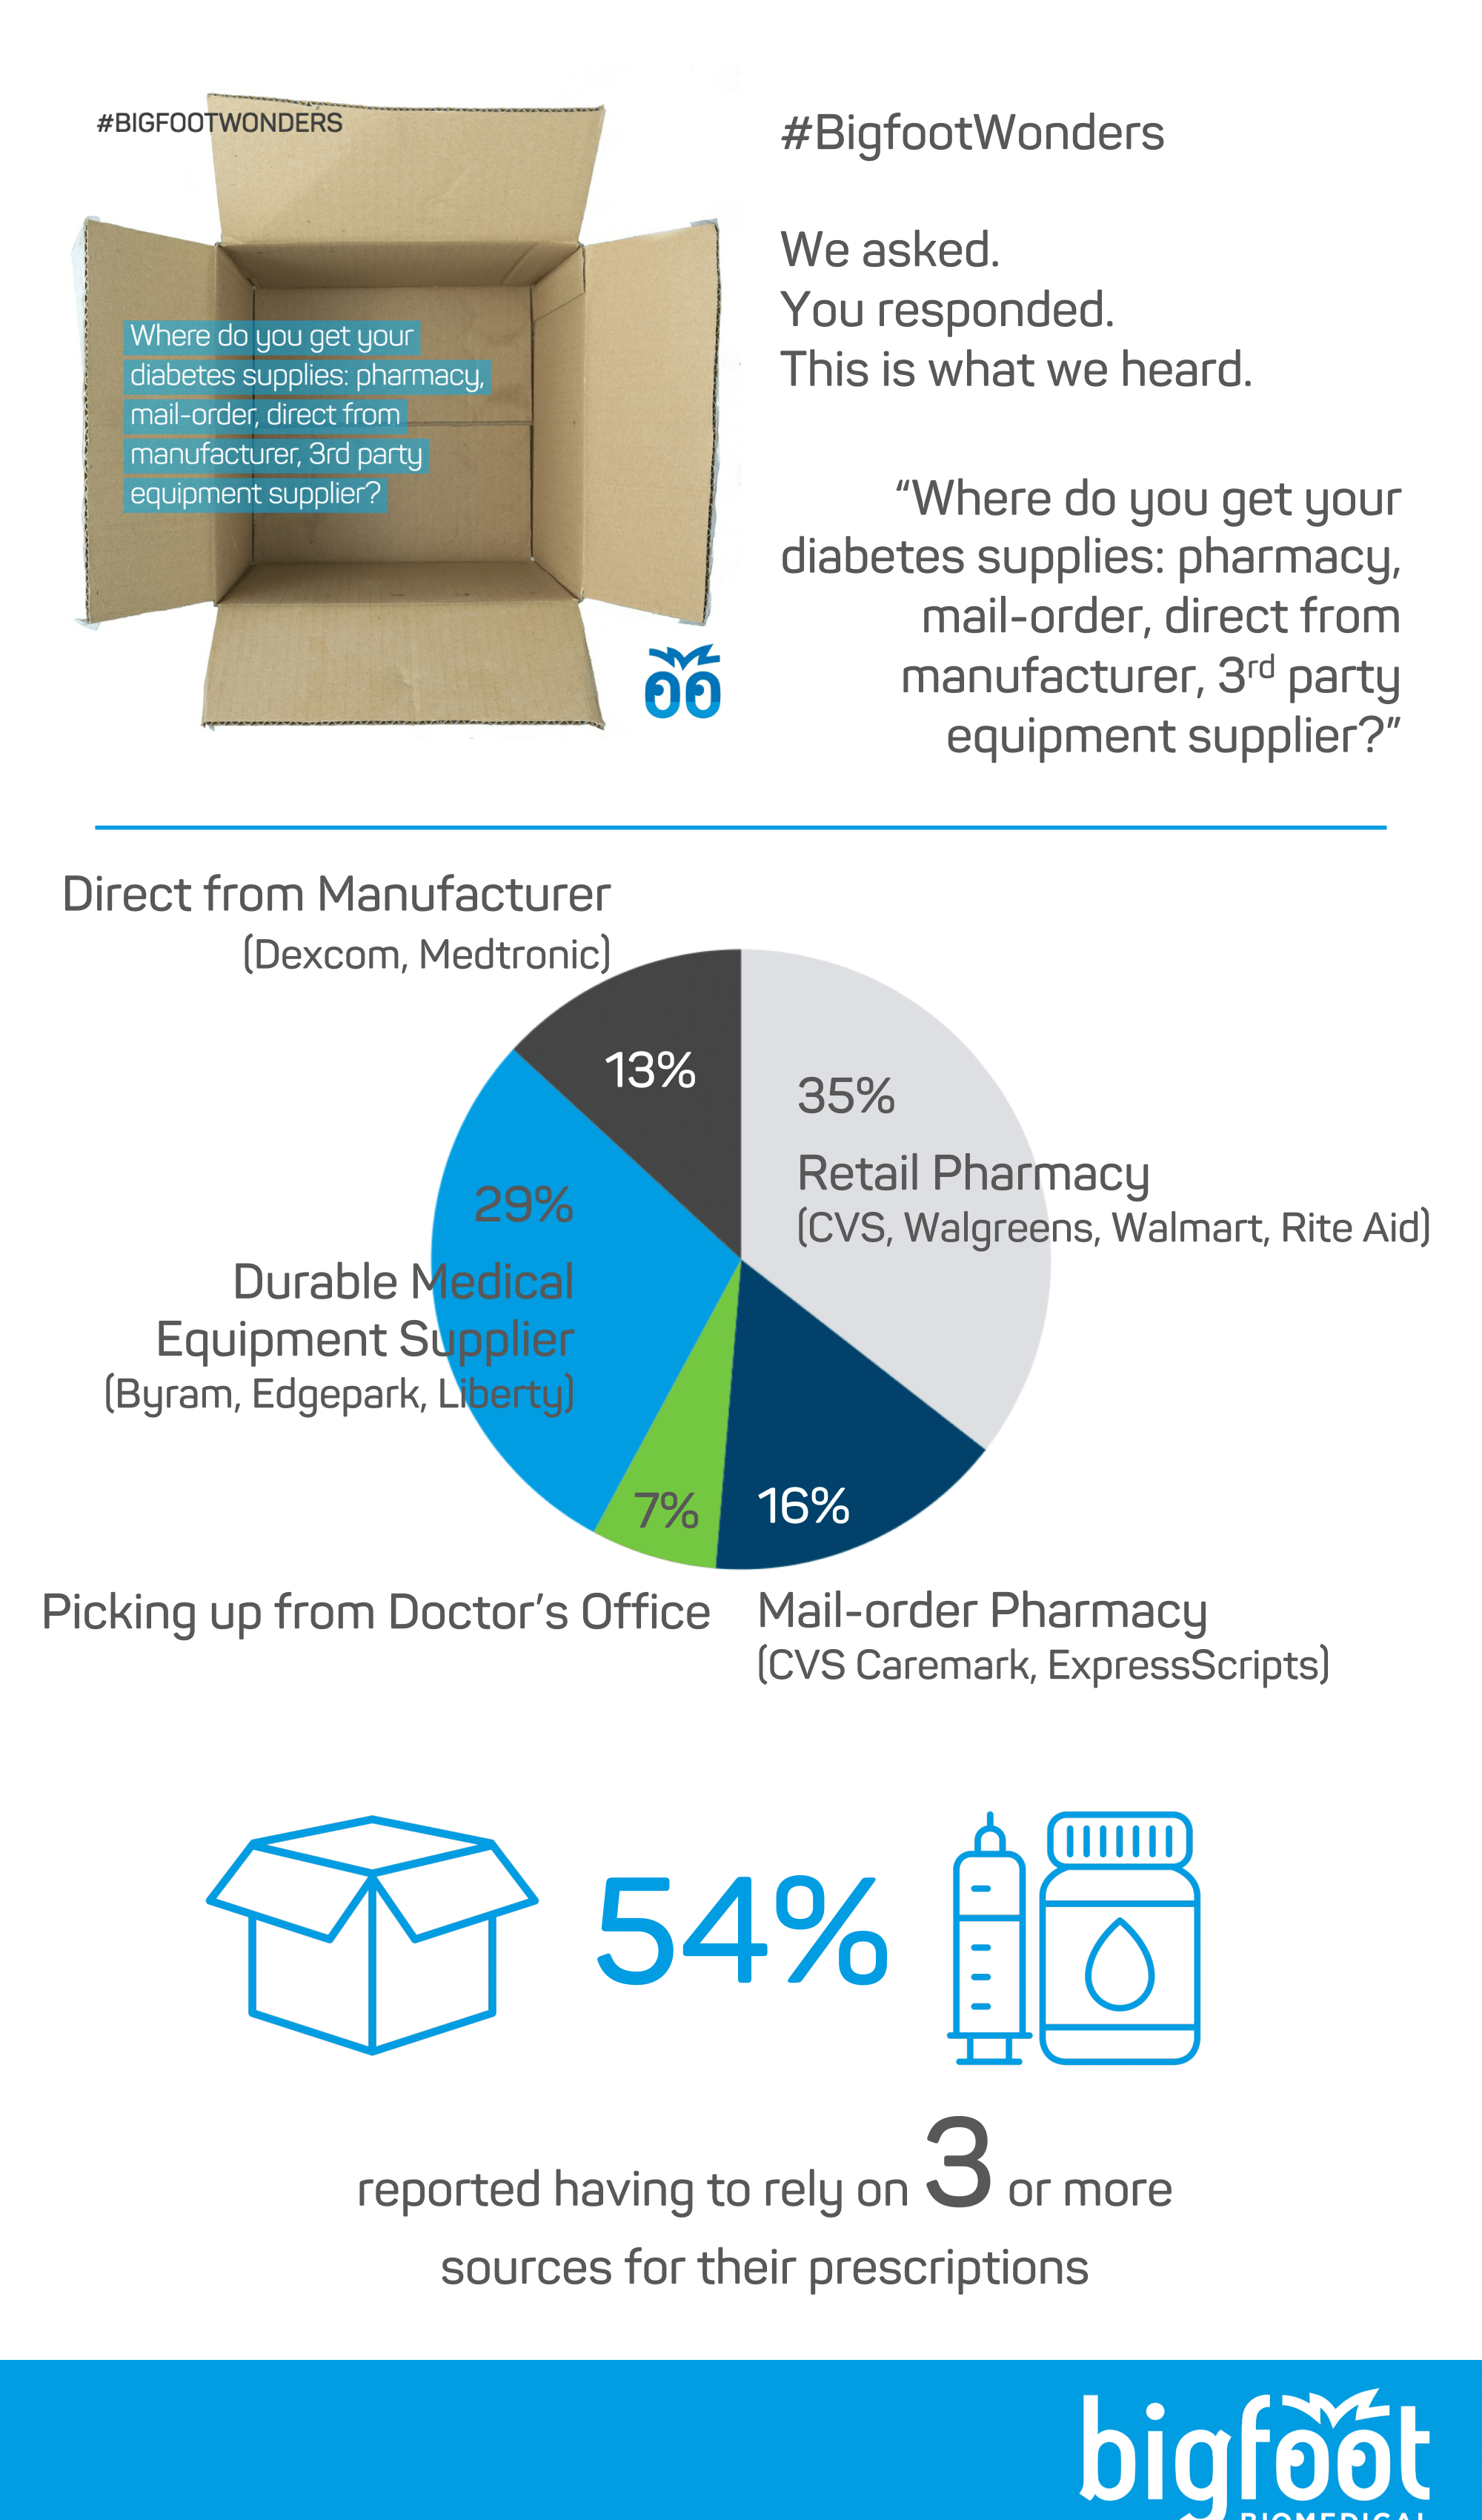 54% of respondents reported having to rely on 3 of more sources or vendors for their supplies, including retail pharmacy, mail order pharmacy, doctor's offices, durable medical equipment distributors, and durable medical equipment manufacturers.